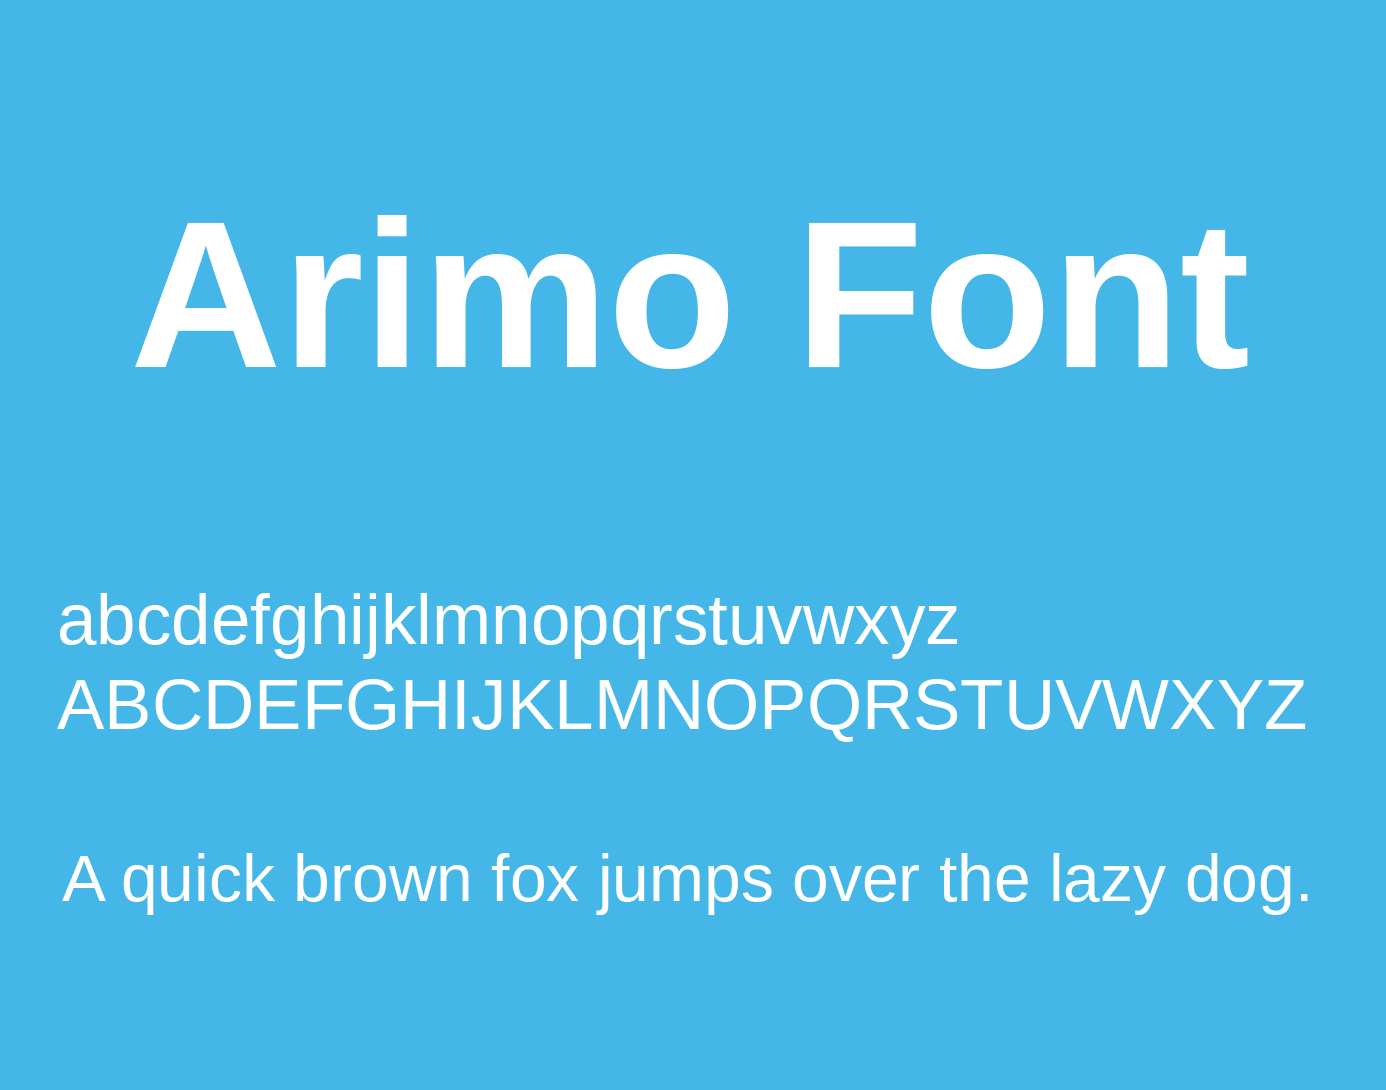 https://fontclarity.com/wp-content/uploads/2019/09/arimo-download-0.png Free Download